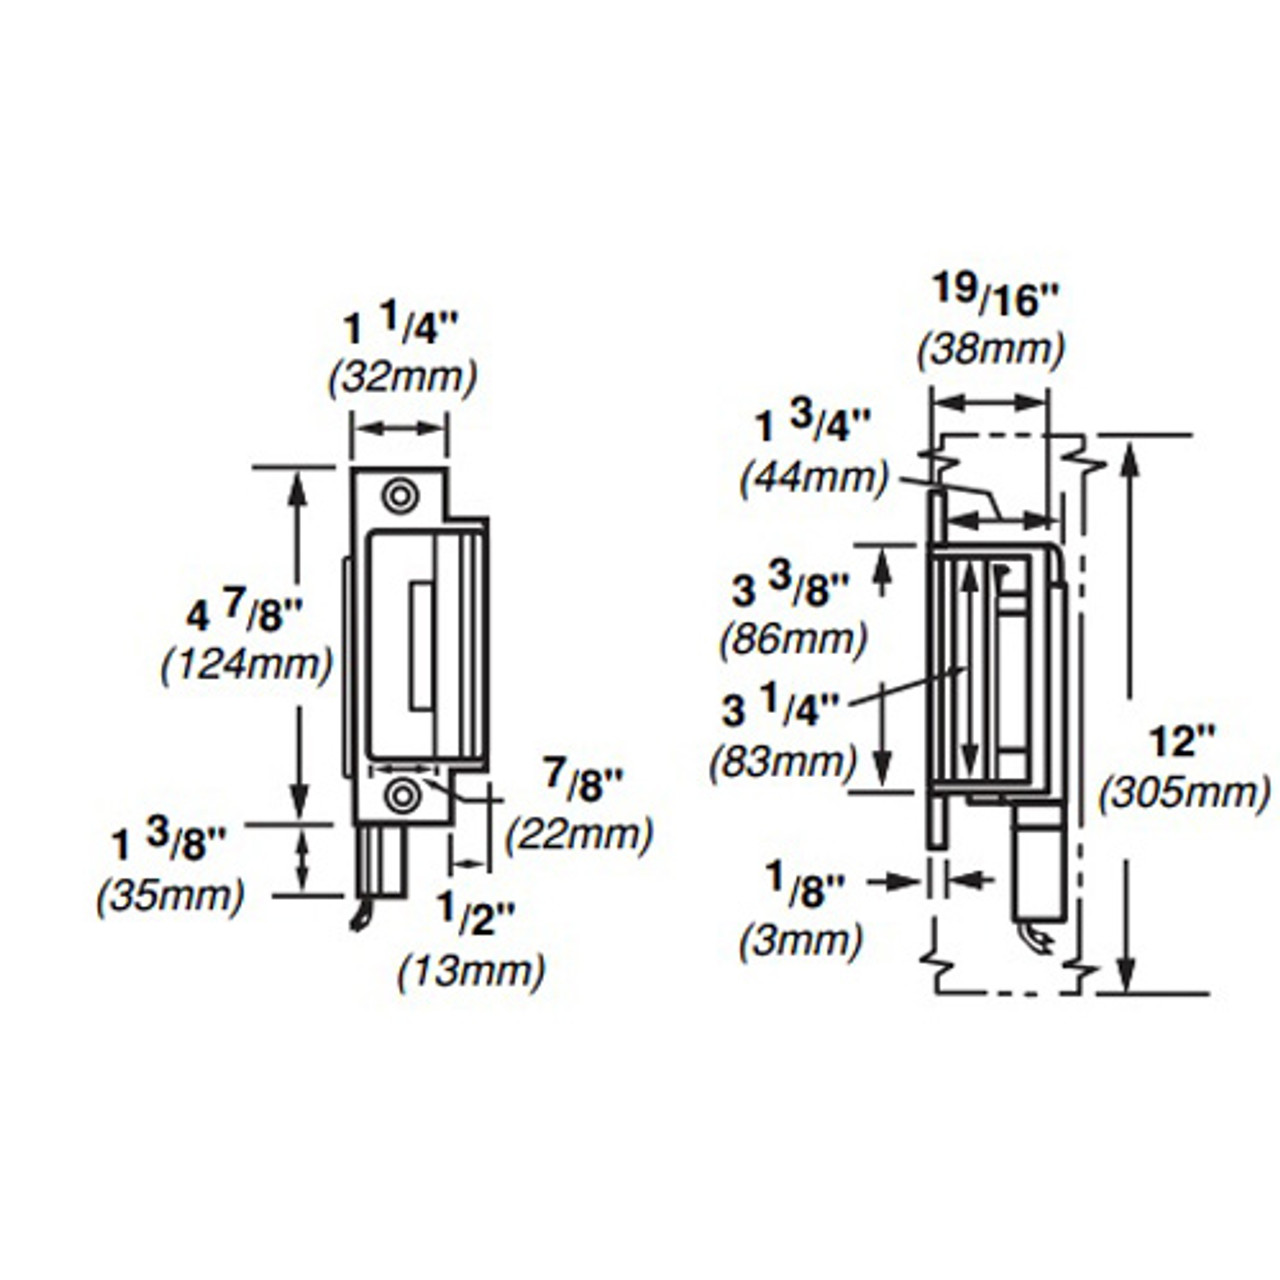 6210-DS-24VDC-US32 Von Duprin Electric Strike for Mortise Locks in Bright Stainless Steel Finish